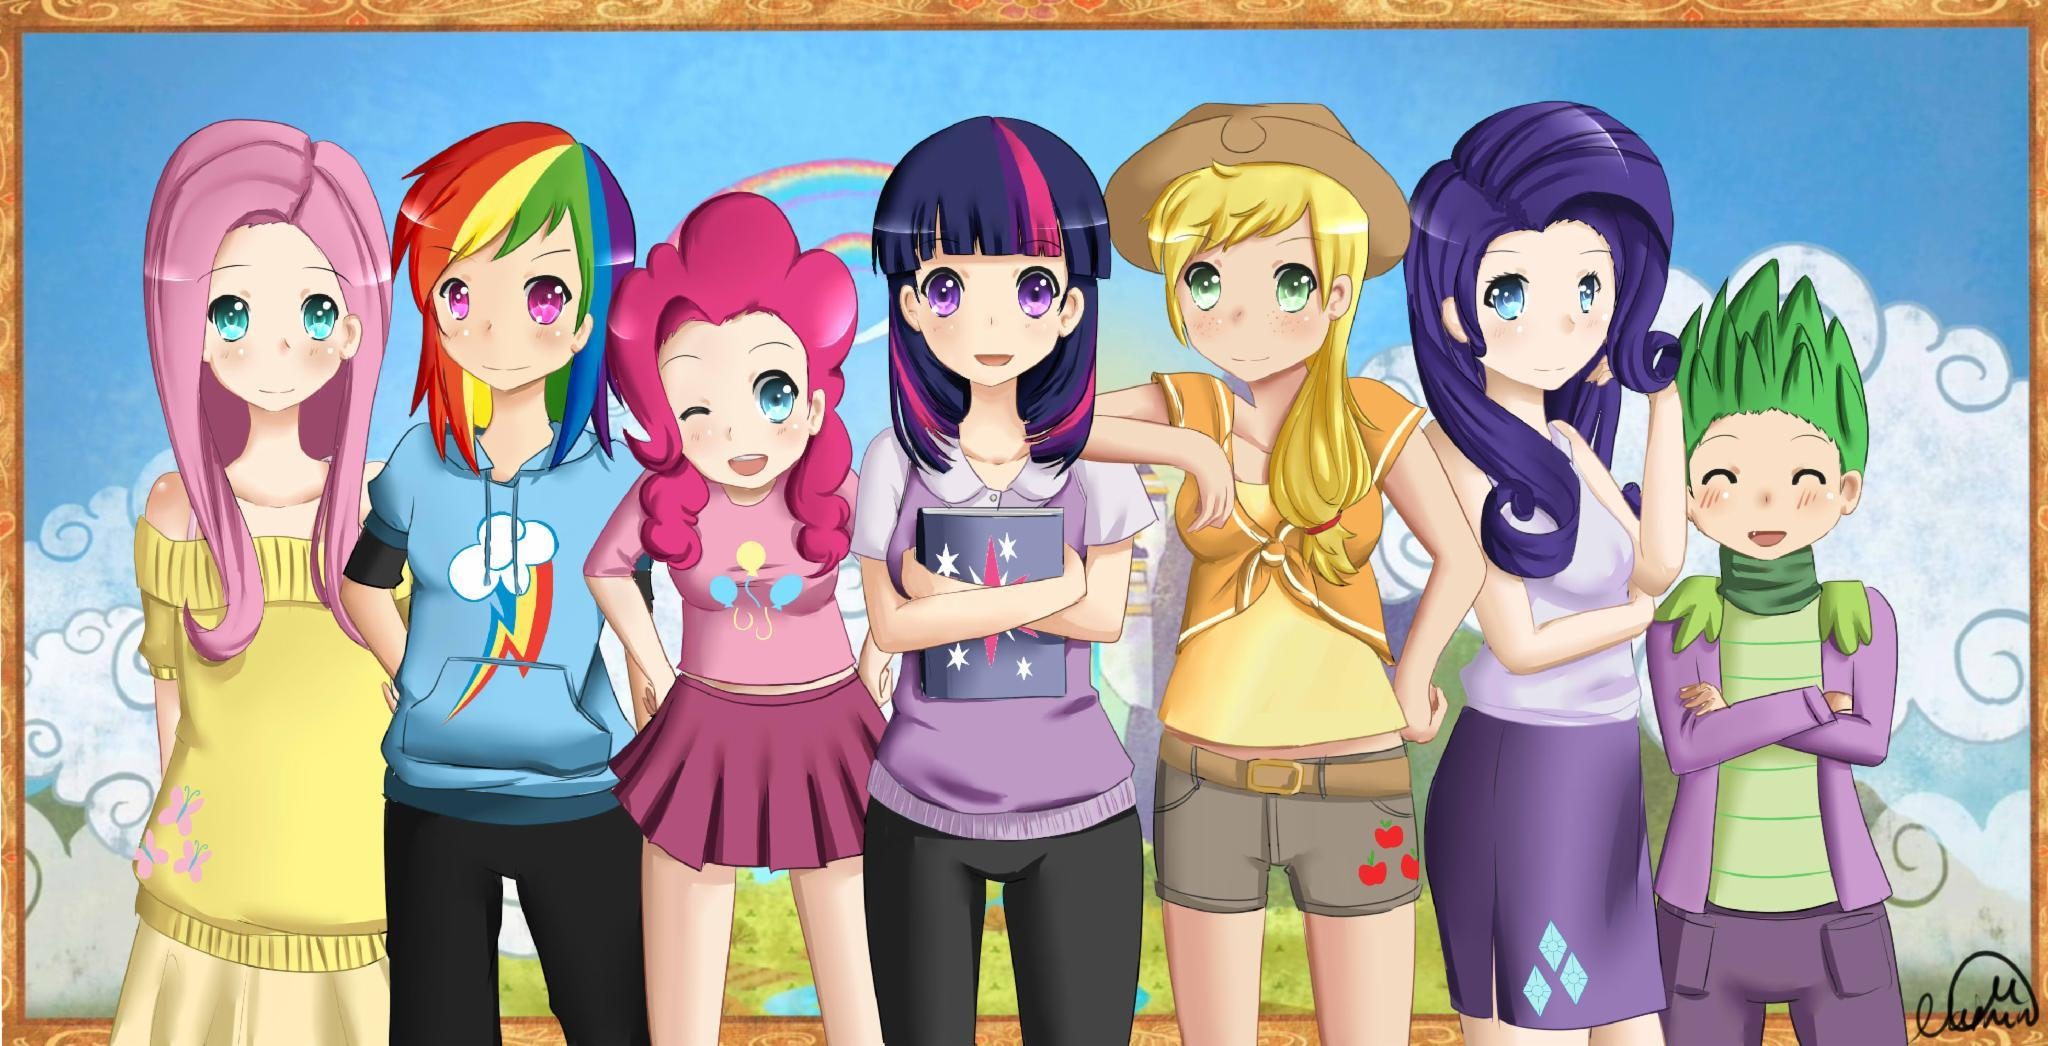 Who Are You Like From My Little Pony